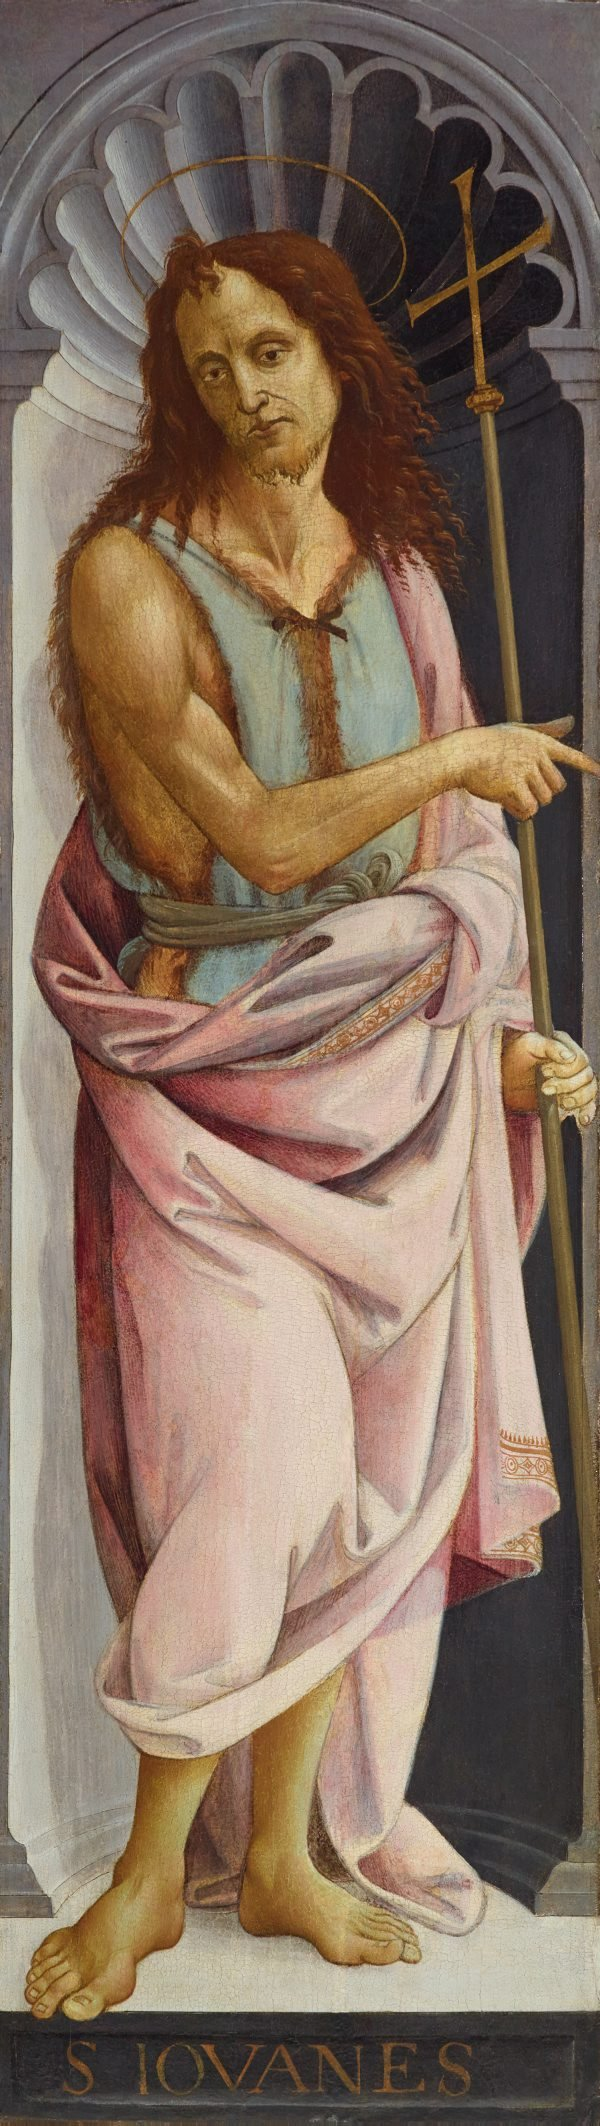 An image of Saint John the Baptist